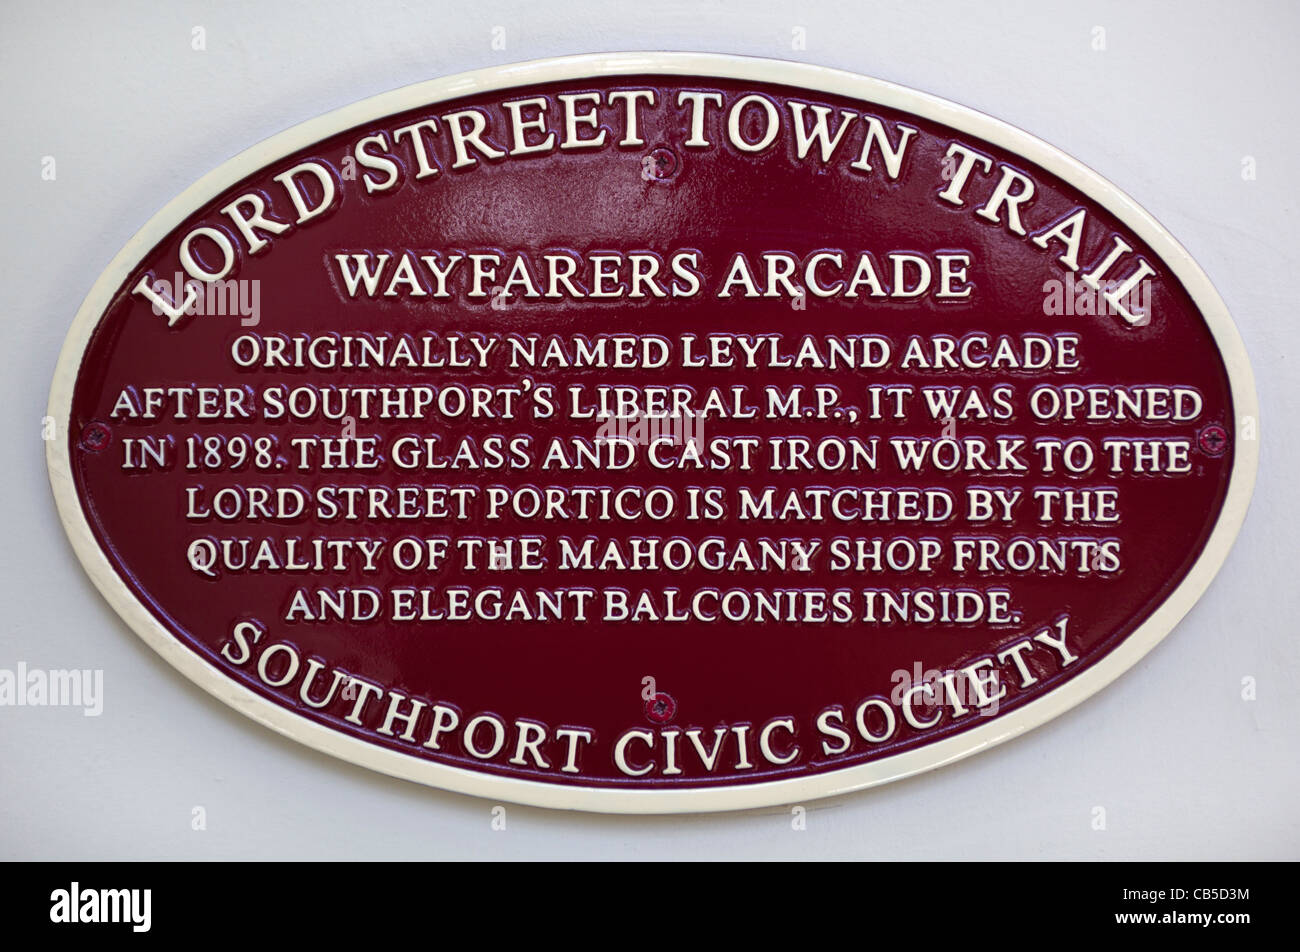 Lord Street Town Trail Plaque inside the Wayfarers Arcade Southport Stock Photo